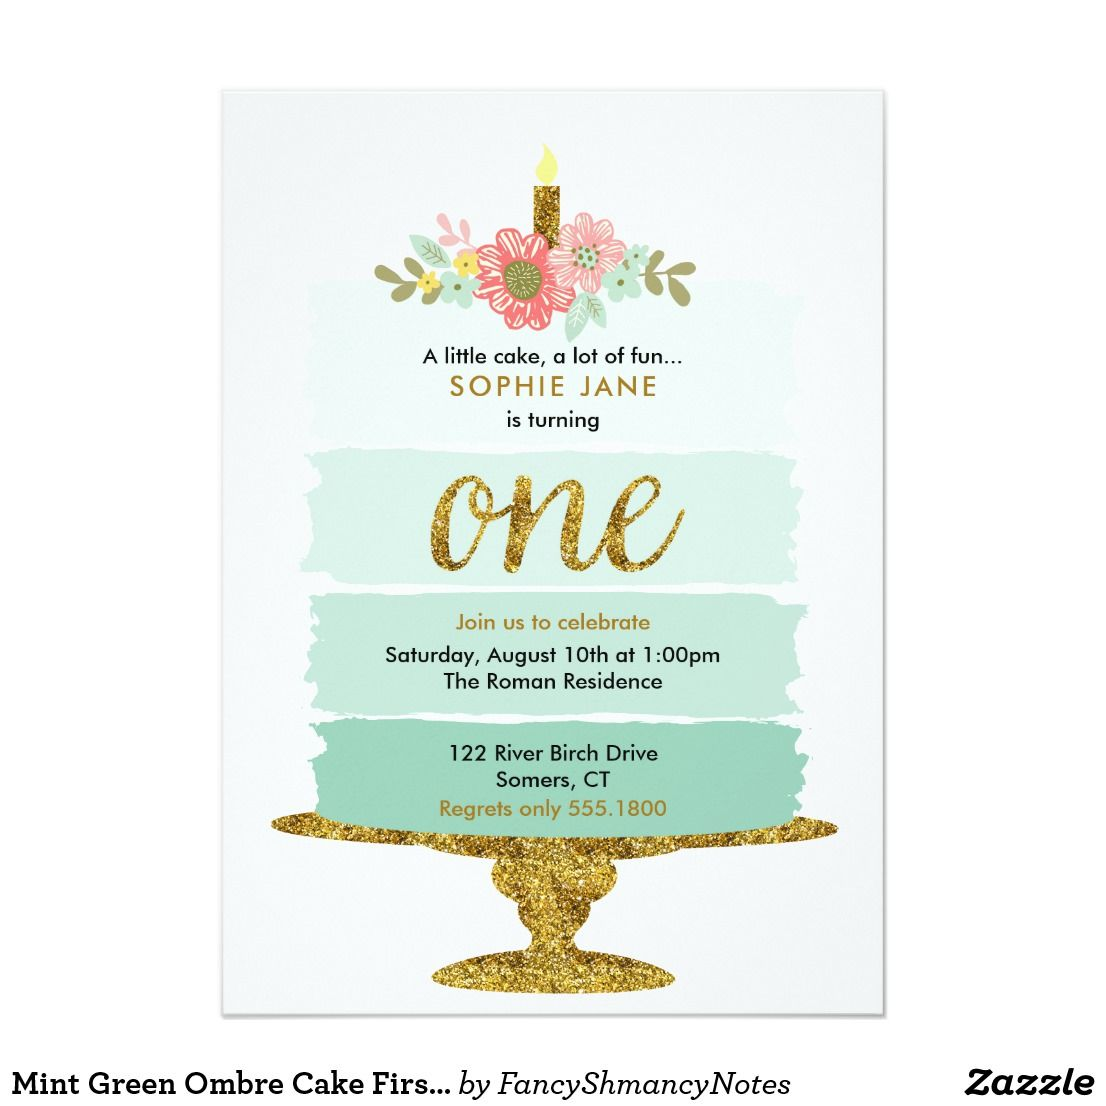 Mint green ombre cake first birthday invitation birthday mint green ombre cake first birthday invitation stopboris Image collections